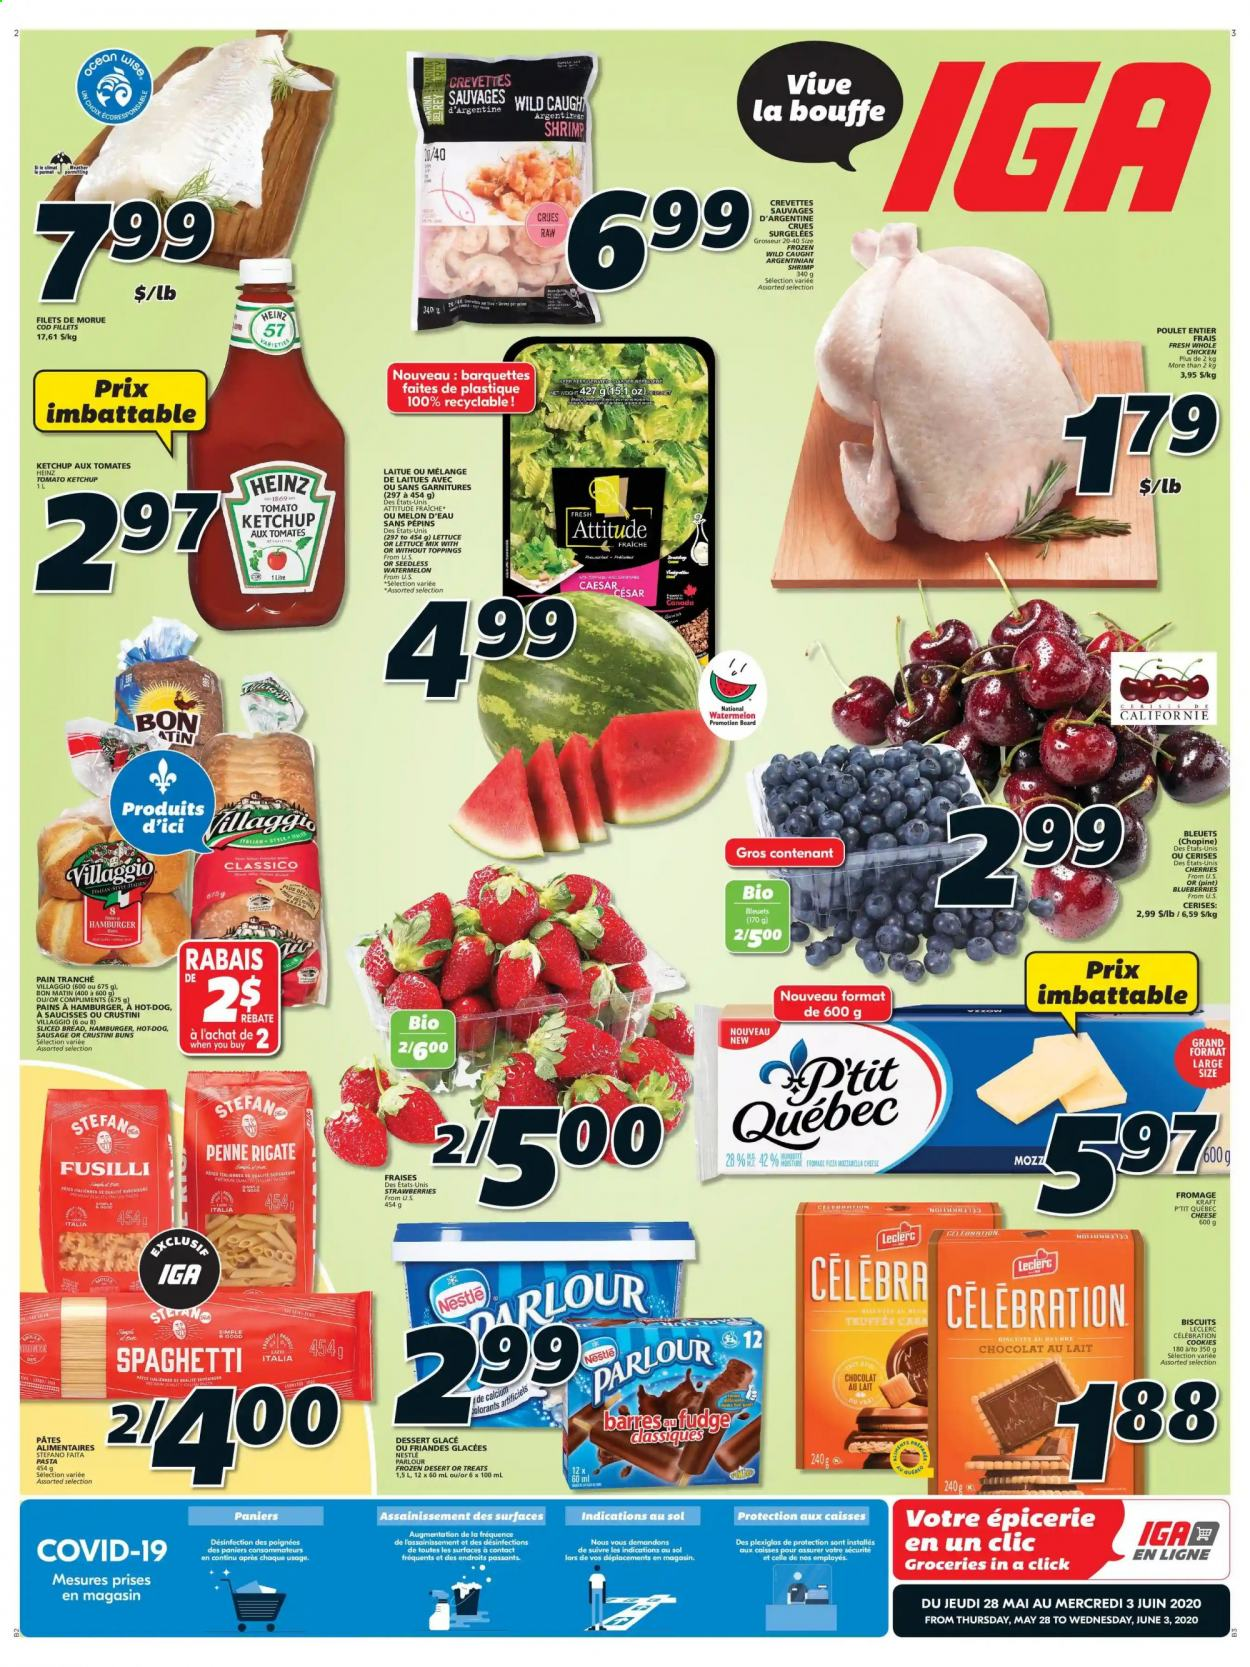 IGA Flyer  - May 28, 2020 - June 03, 2020. Page 1.